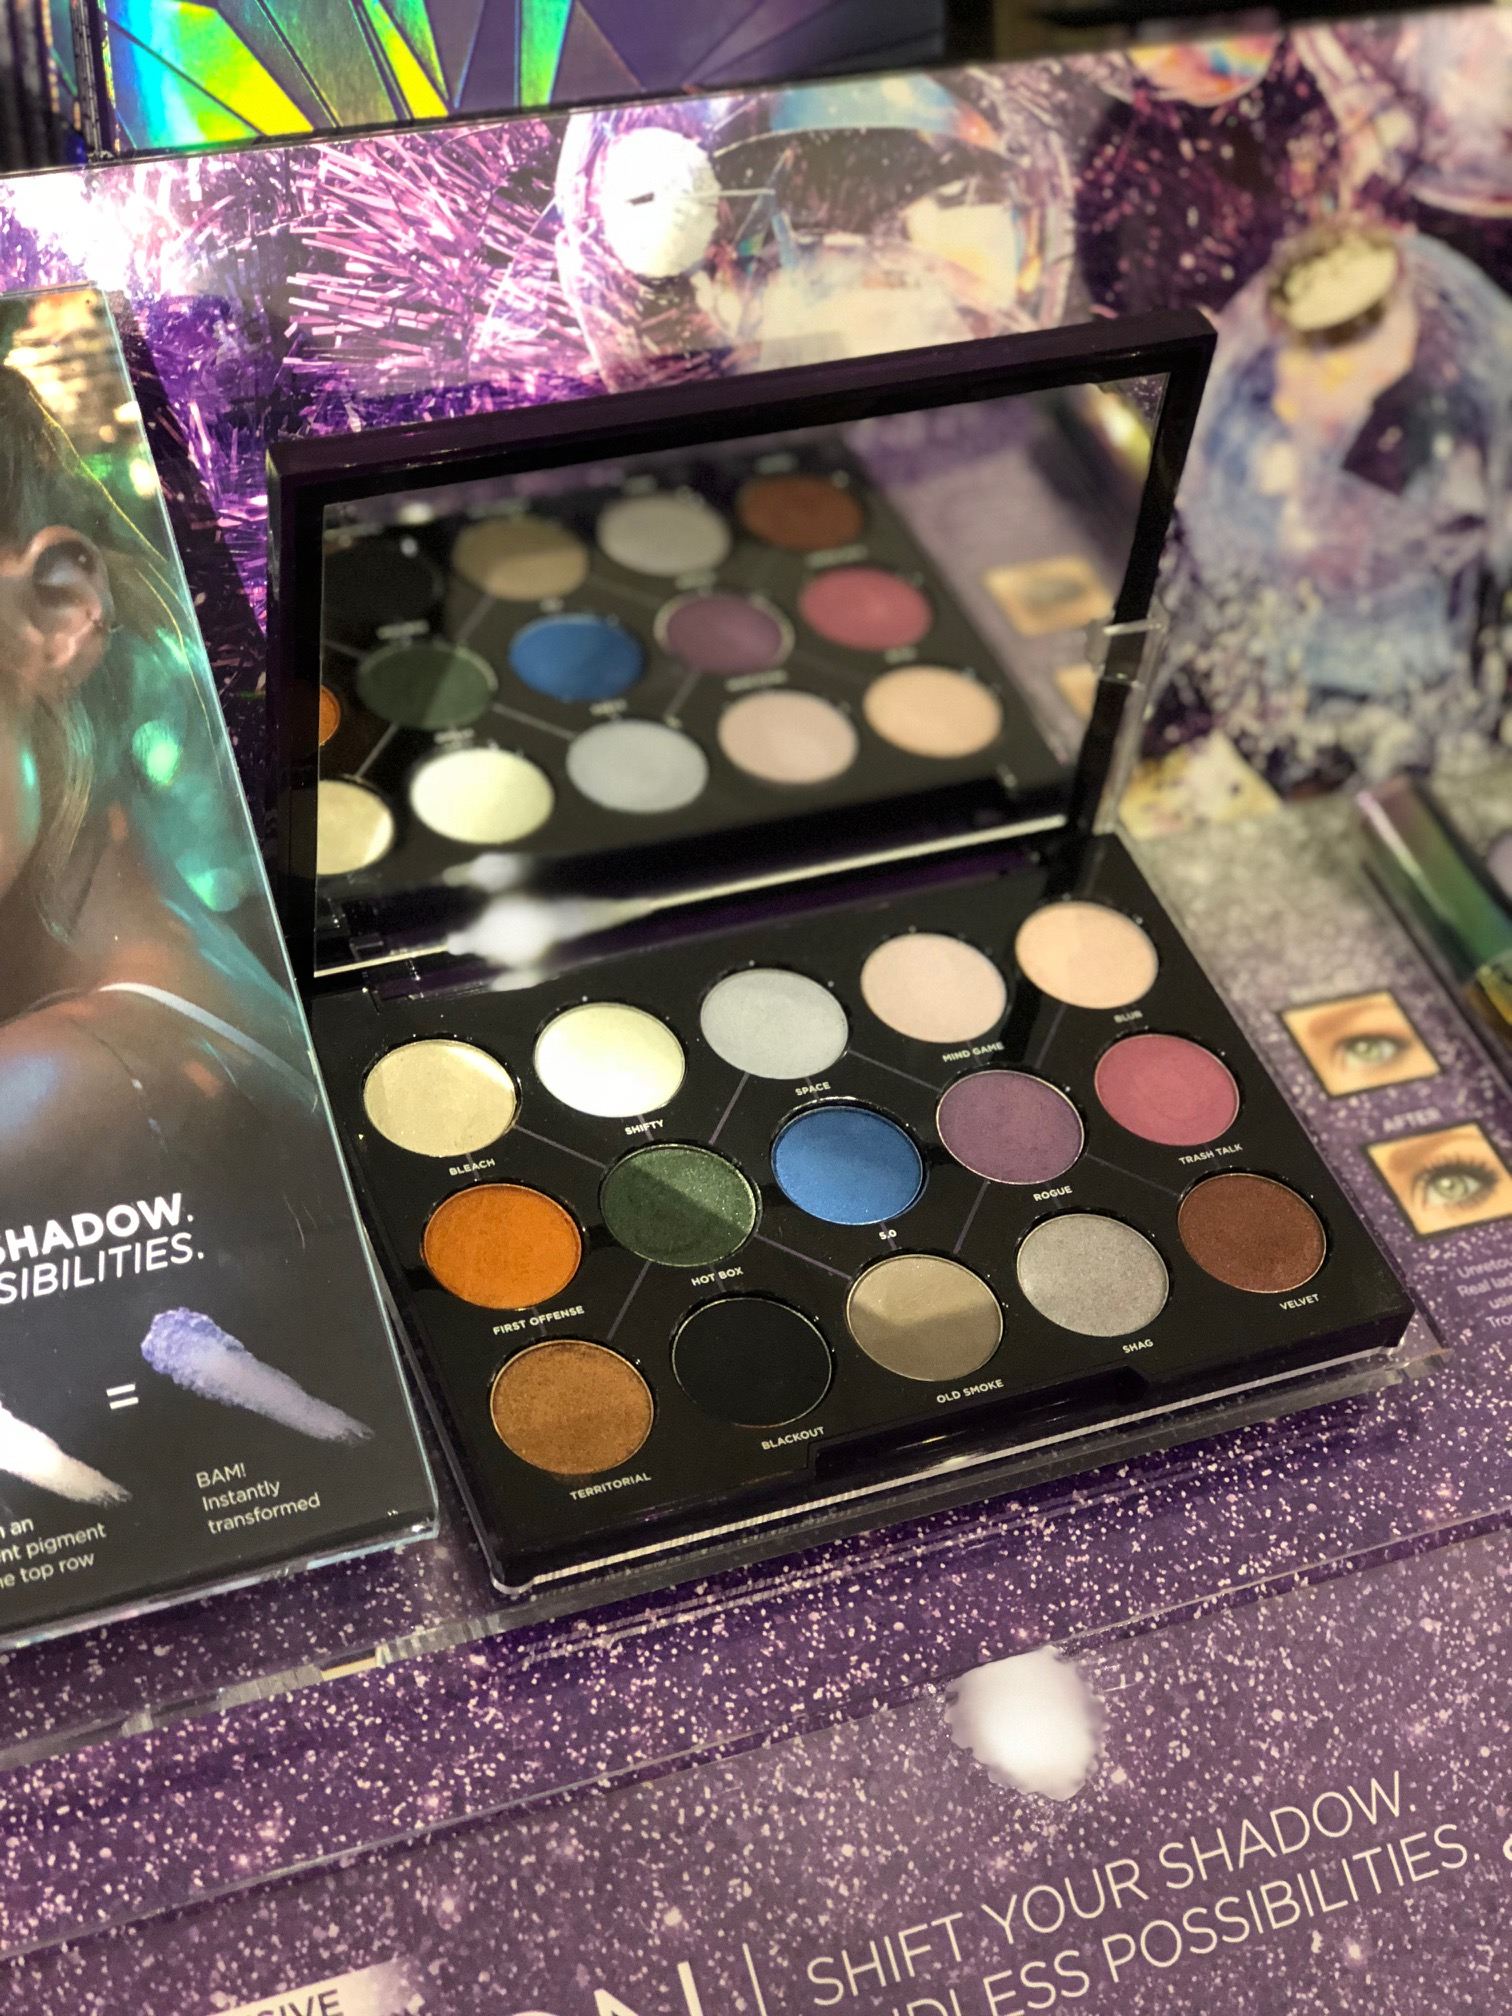 12 fabulous last-minute beauty gifts at Sephora inside JCPenney   Urban Decay Distortion Palette   Sponsor